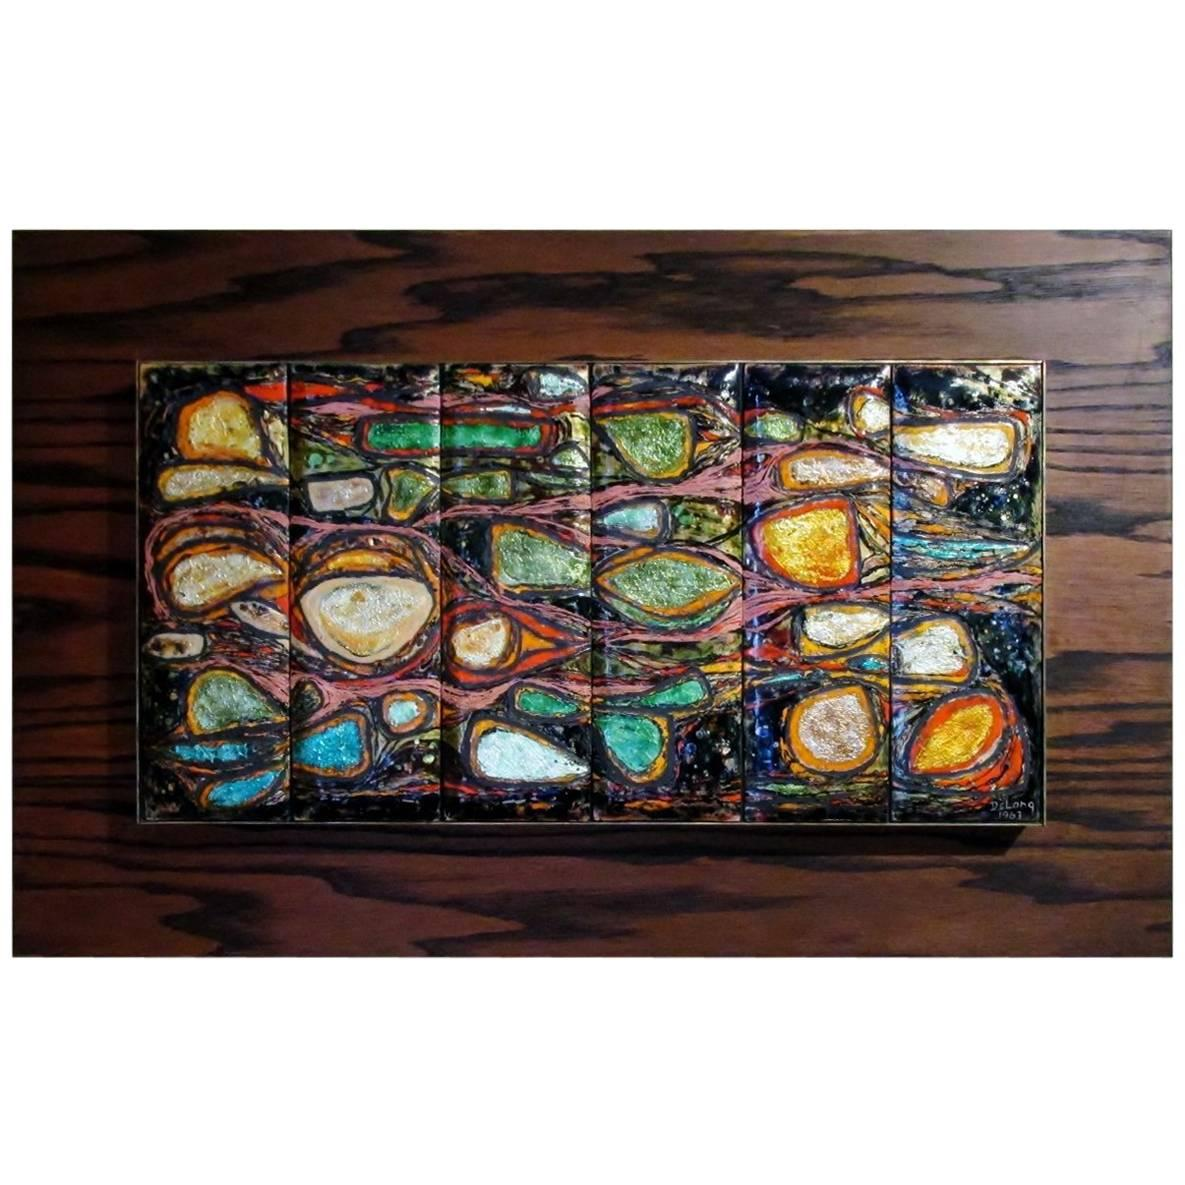 Barbara DeLong Modernist Abstract Enamel On Copper Wall Art For Sale